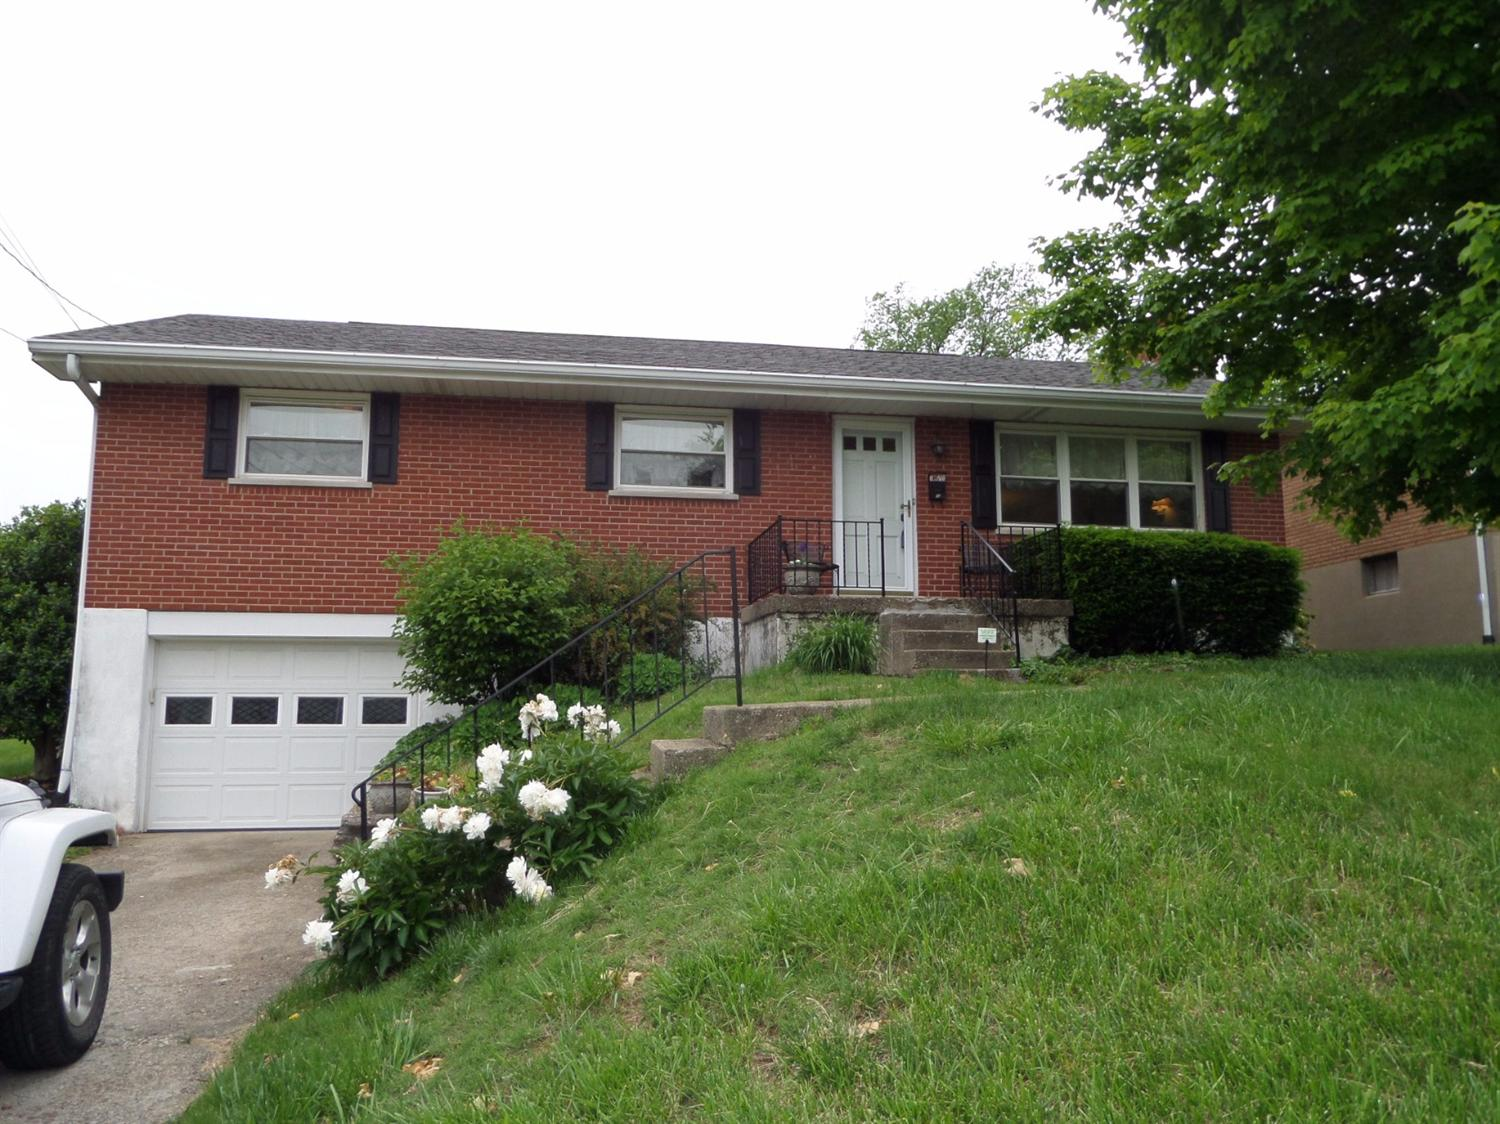 Photo 1 for 10 Douglas Dr Newport, KY 41071